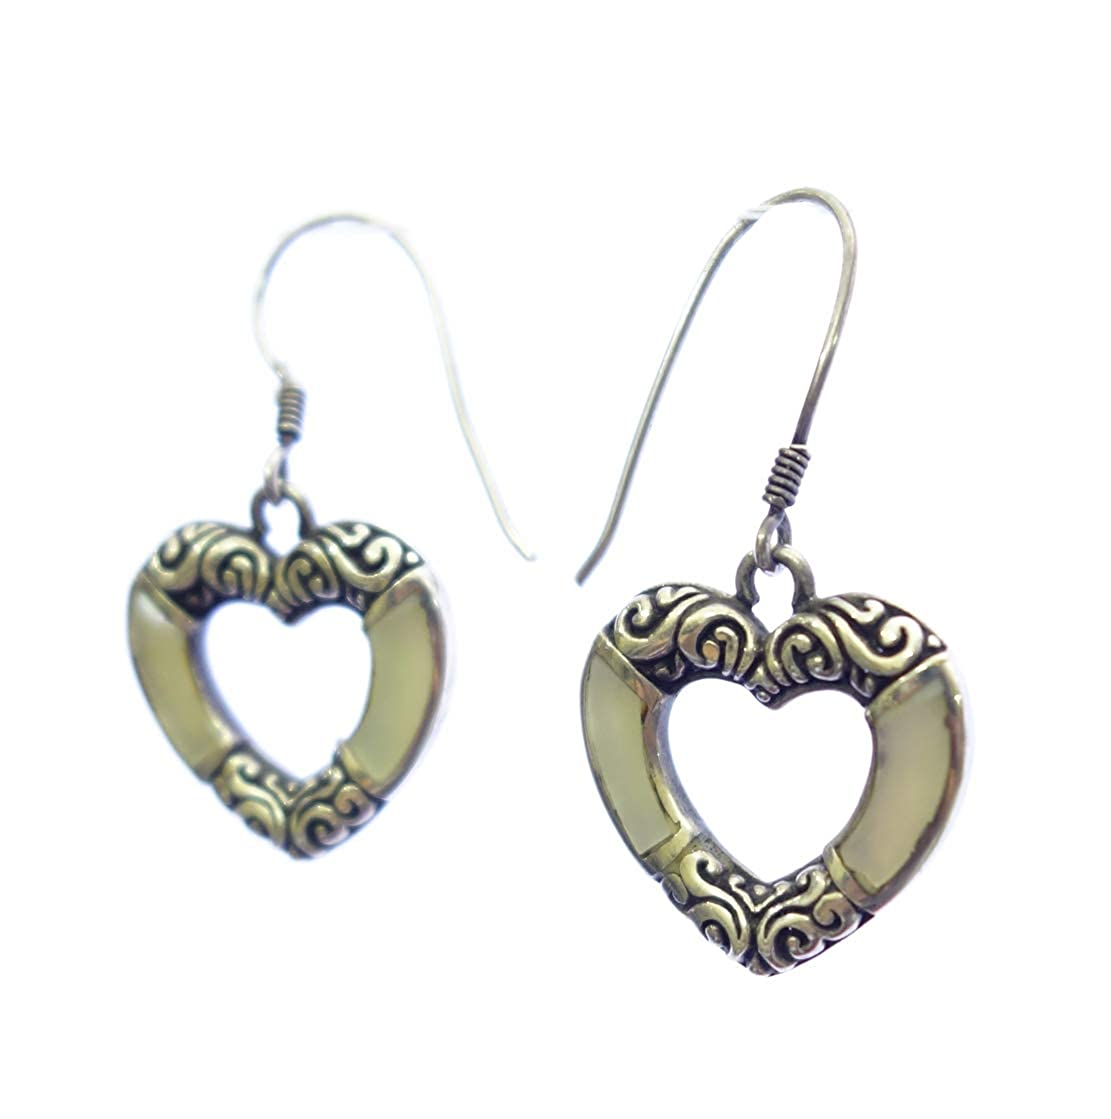 AUTHENTIC BALINESE HEART SHAPED MODERN FASHION DROP DANGLE 925 STERLING SILVER EARRING FOR WOMEN /& GIRLS MOTHER OF PEARL UNIQUE DESIGNER HANDMADE EARRING JEWELRY BY ARTISANS